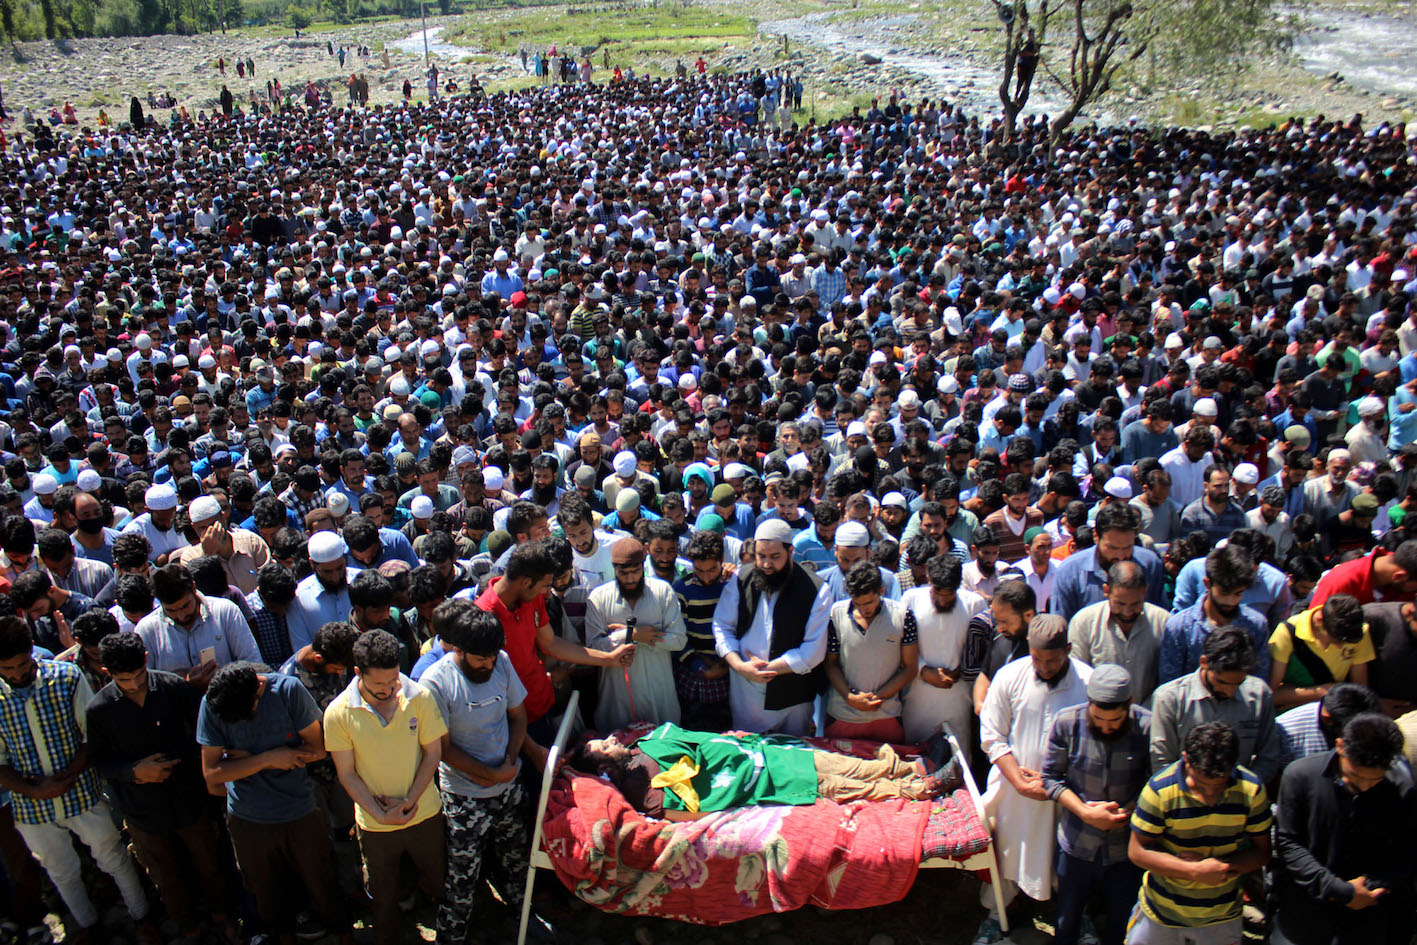 Kashmiri villagers offer funeral prayers of Bashir Lashkari in his native village of Sopshali Kokernag in South Kashmir on July 2,2017. Credit: Vikar Syed